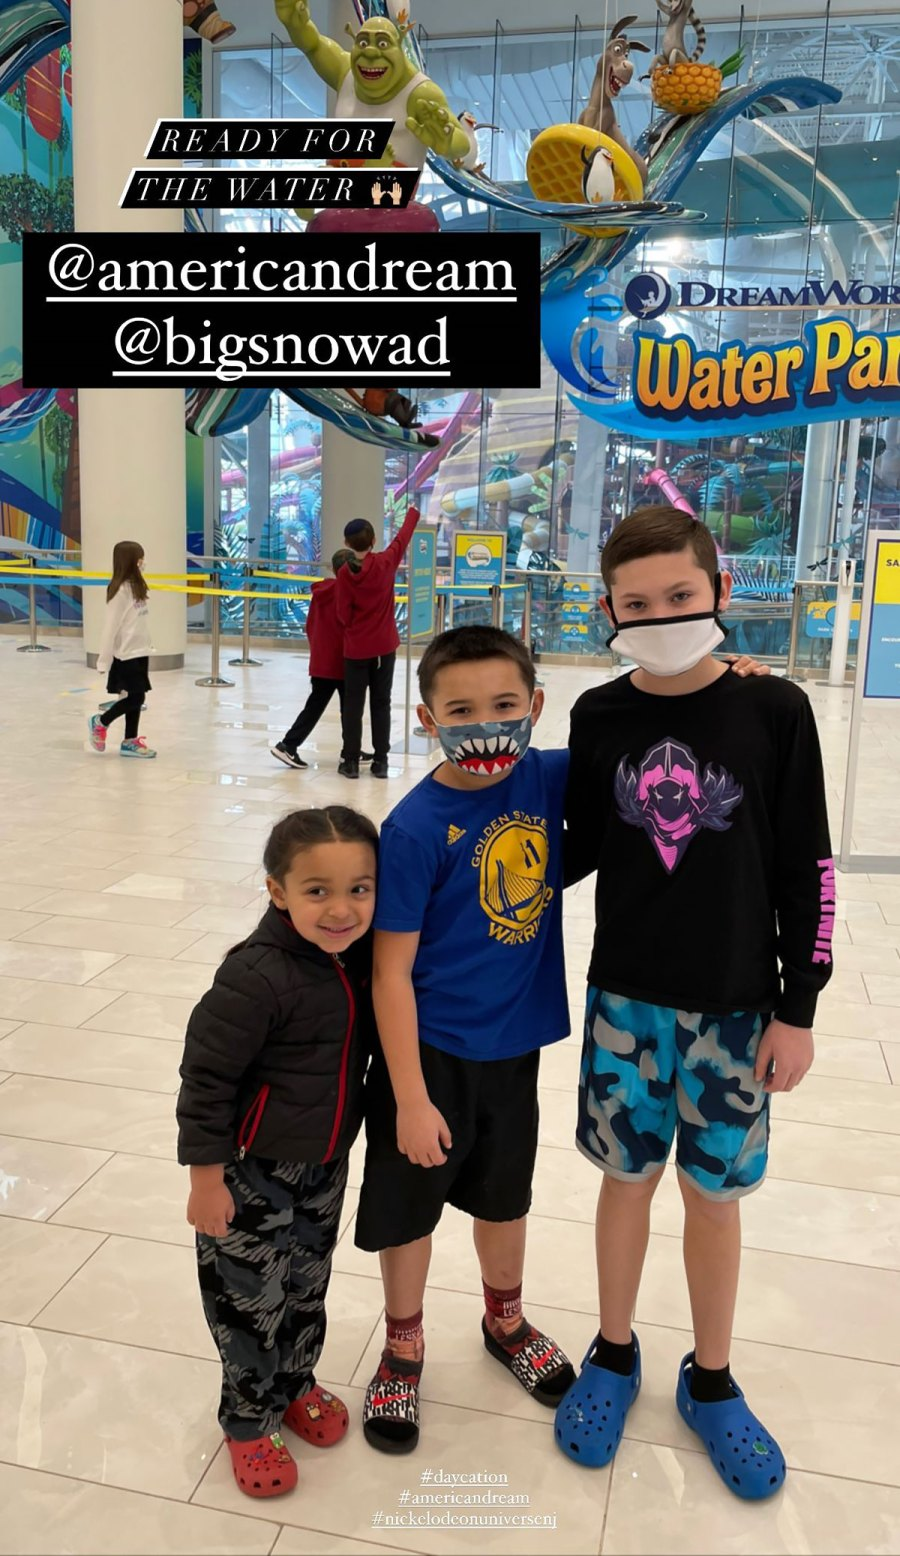 Kailyn Lowry Takes 4 Sons on '1st Water Park Trip' Amid Pandemic: Pics